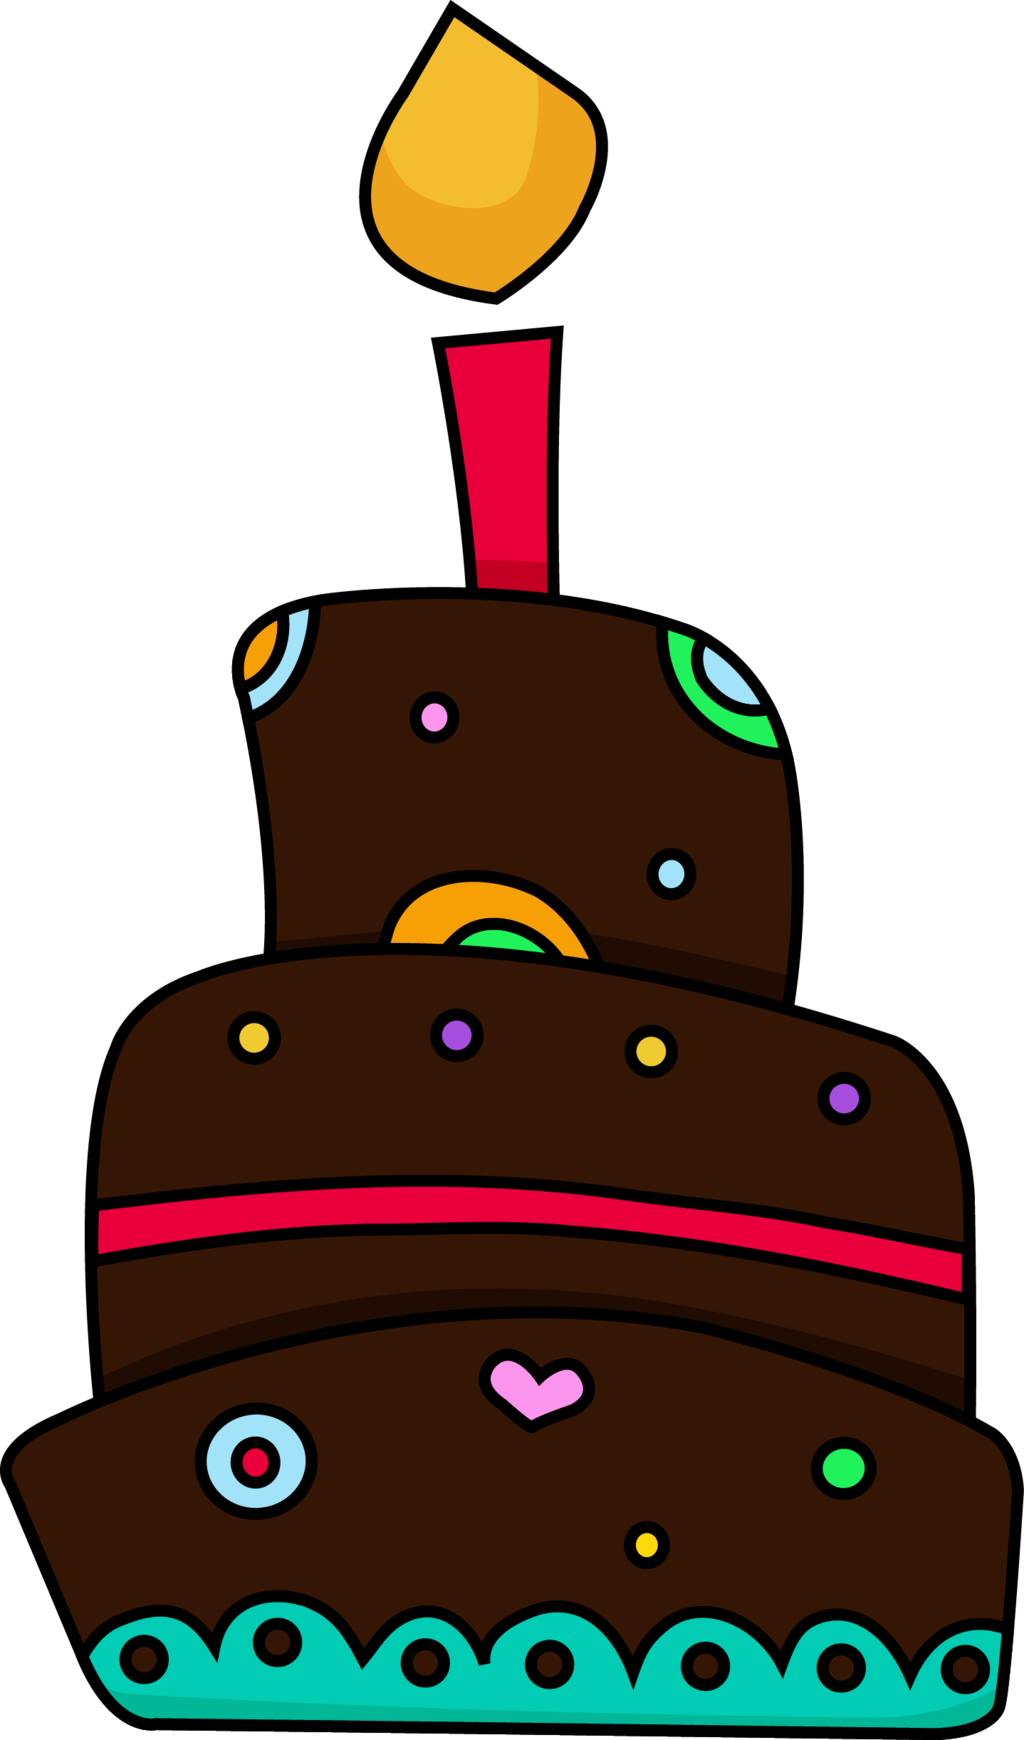 Chocolate birthday cake clip. Intolerable acts clipart demand economics